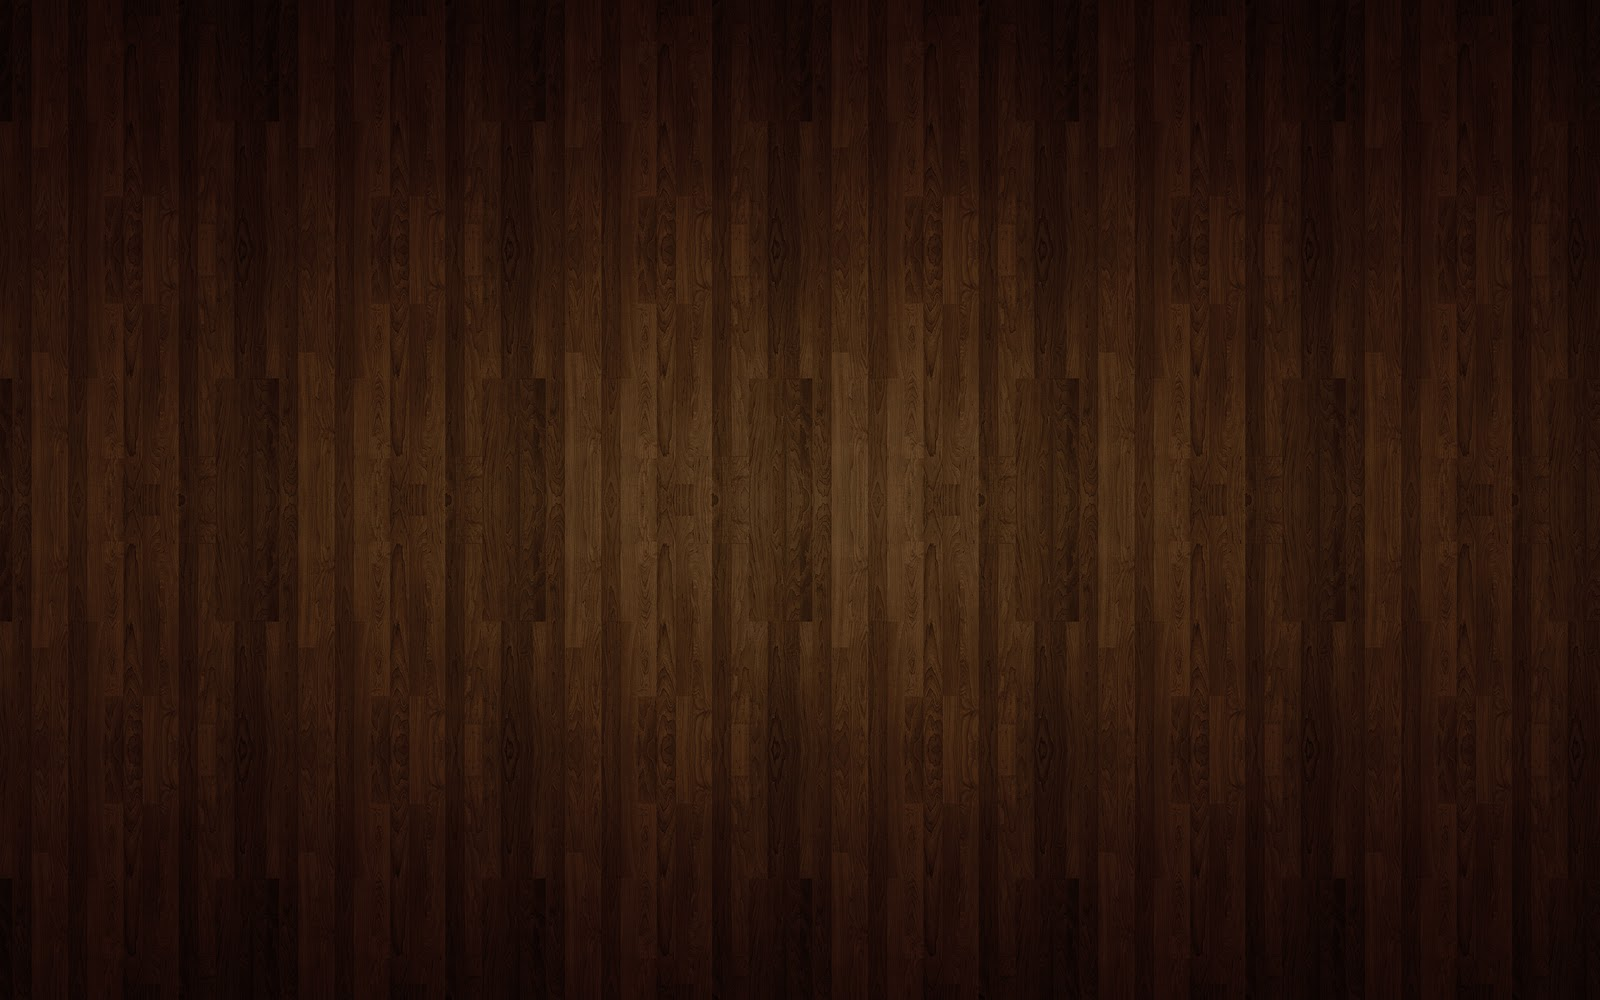 http://1.bp.blogspot.com/-x_Wh4t3XqgM/TpRm969CcLI/AAAAAAAACwM/FdDUVvh7-ag/s1600/Best-top-desktop-hd-wall-wood-wallpaper-wood-wallpapers-wall-picture-image-15.jpg